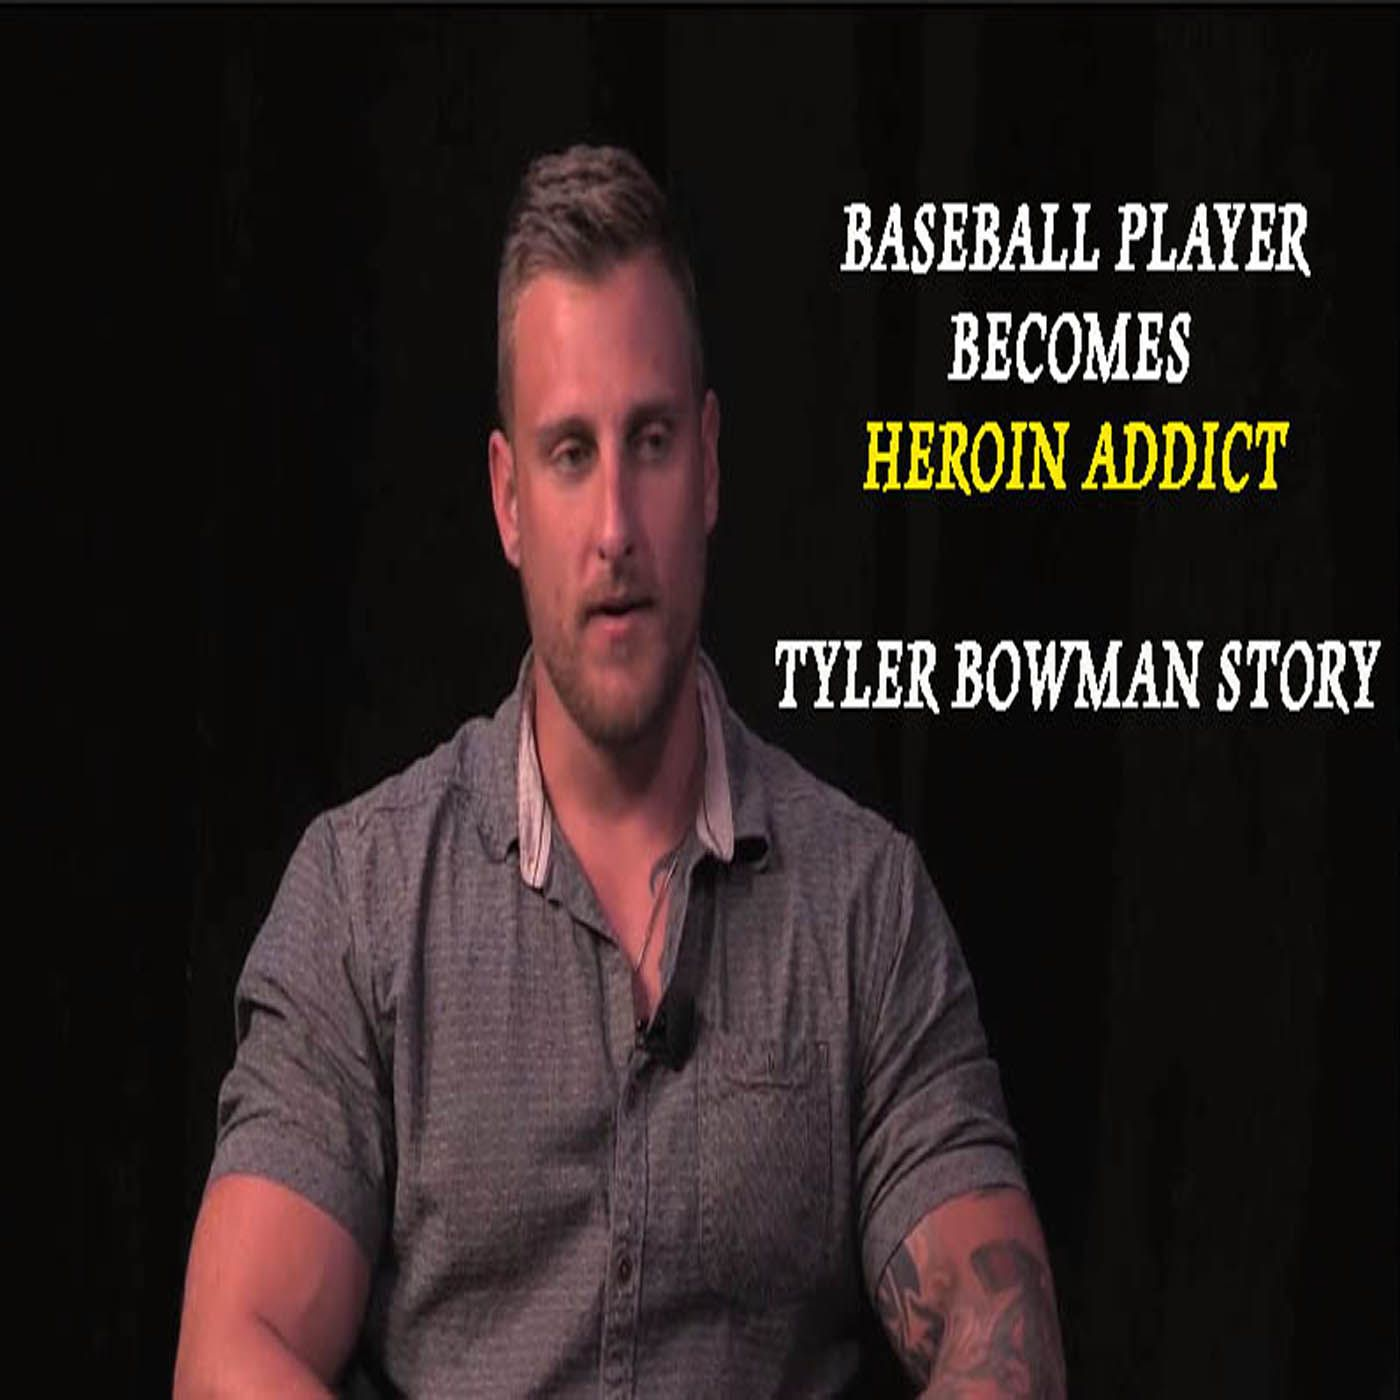 Baseball Player Tyler Bowman Becomes Addicted to Heroin